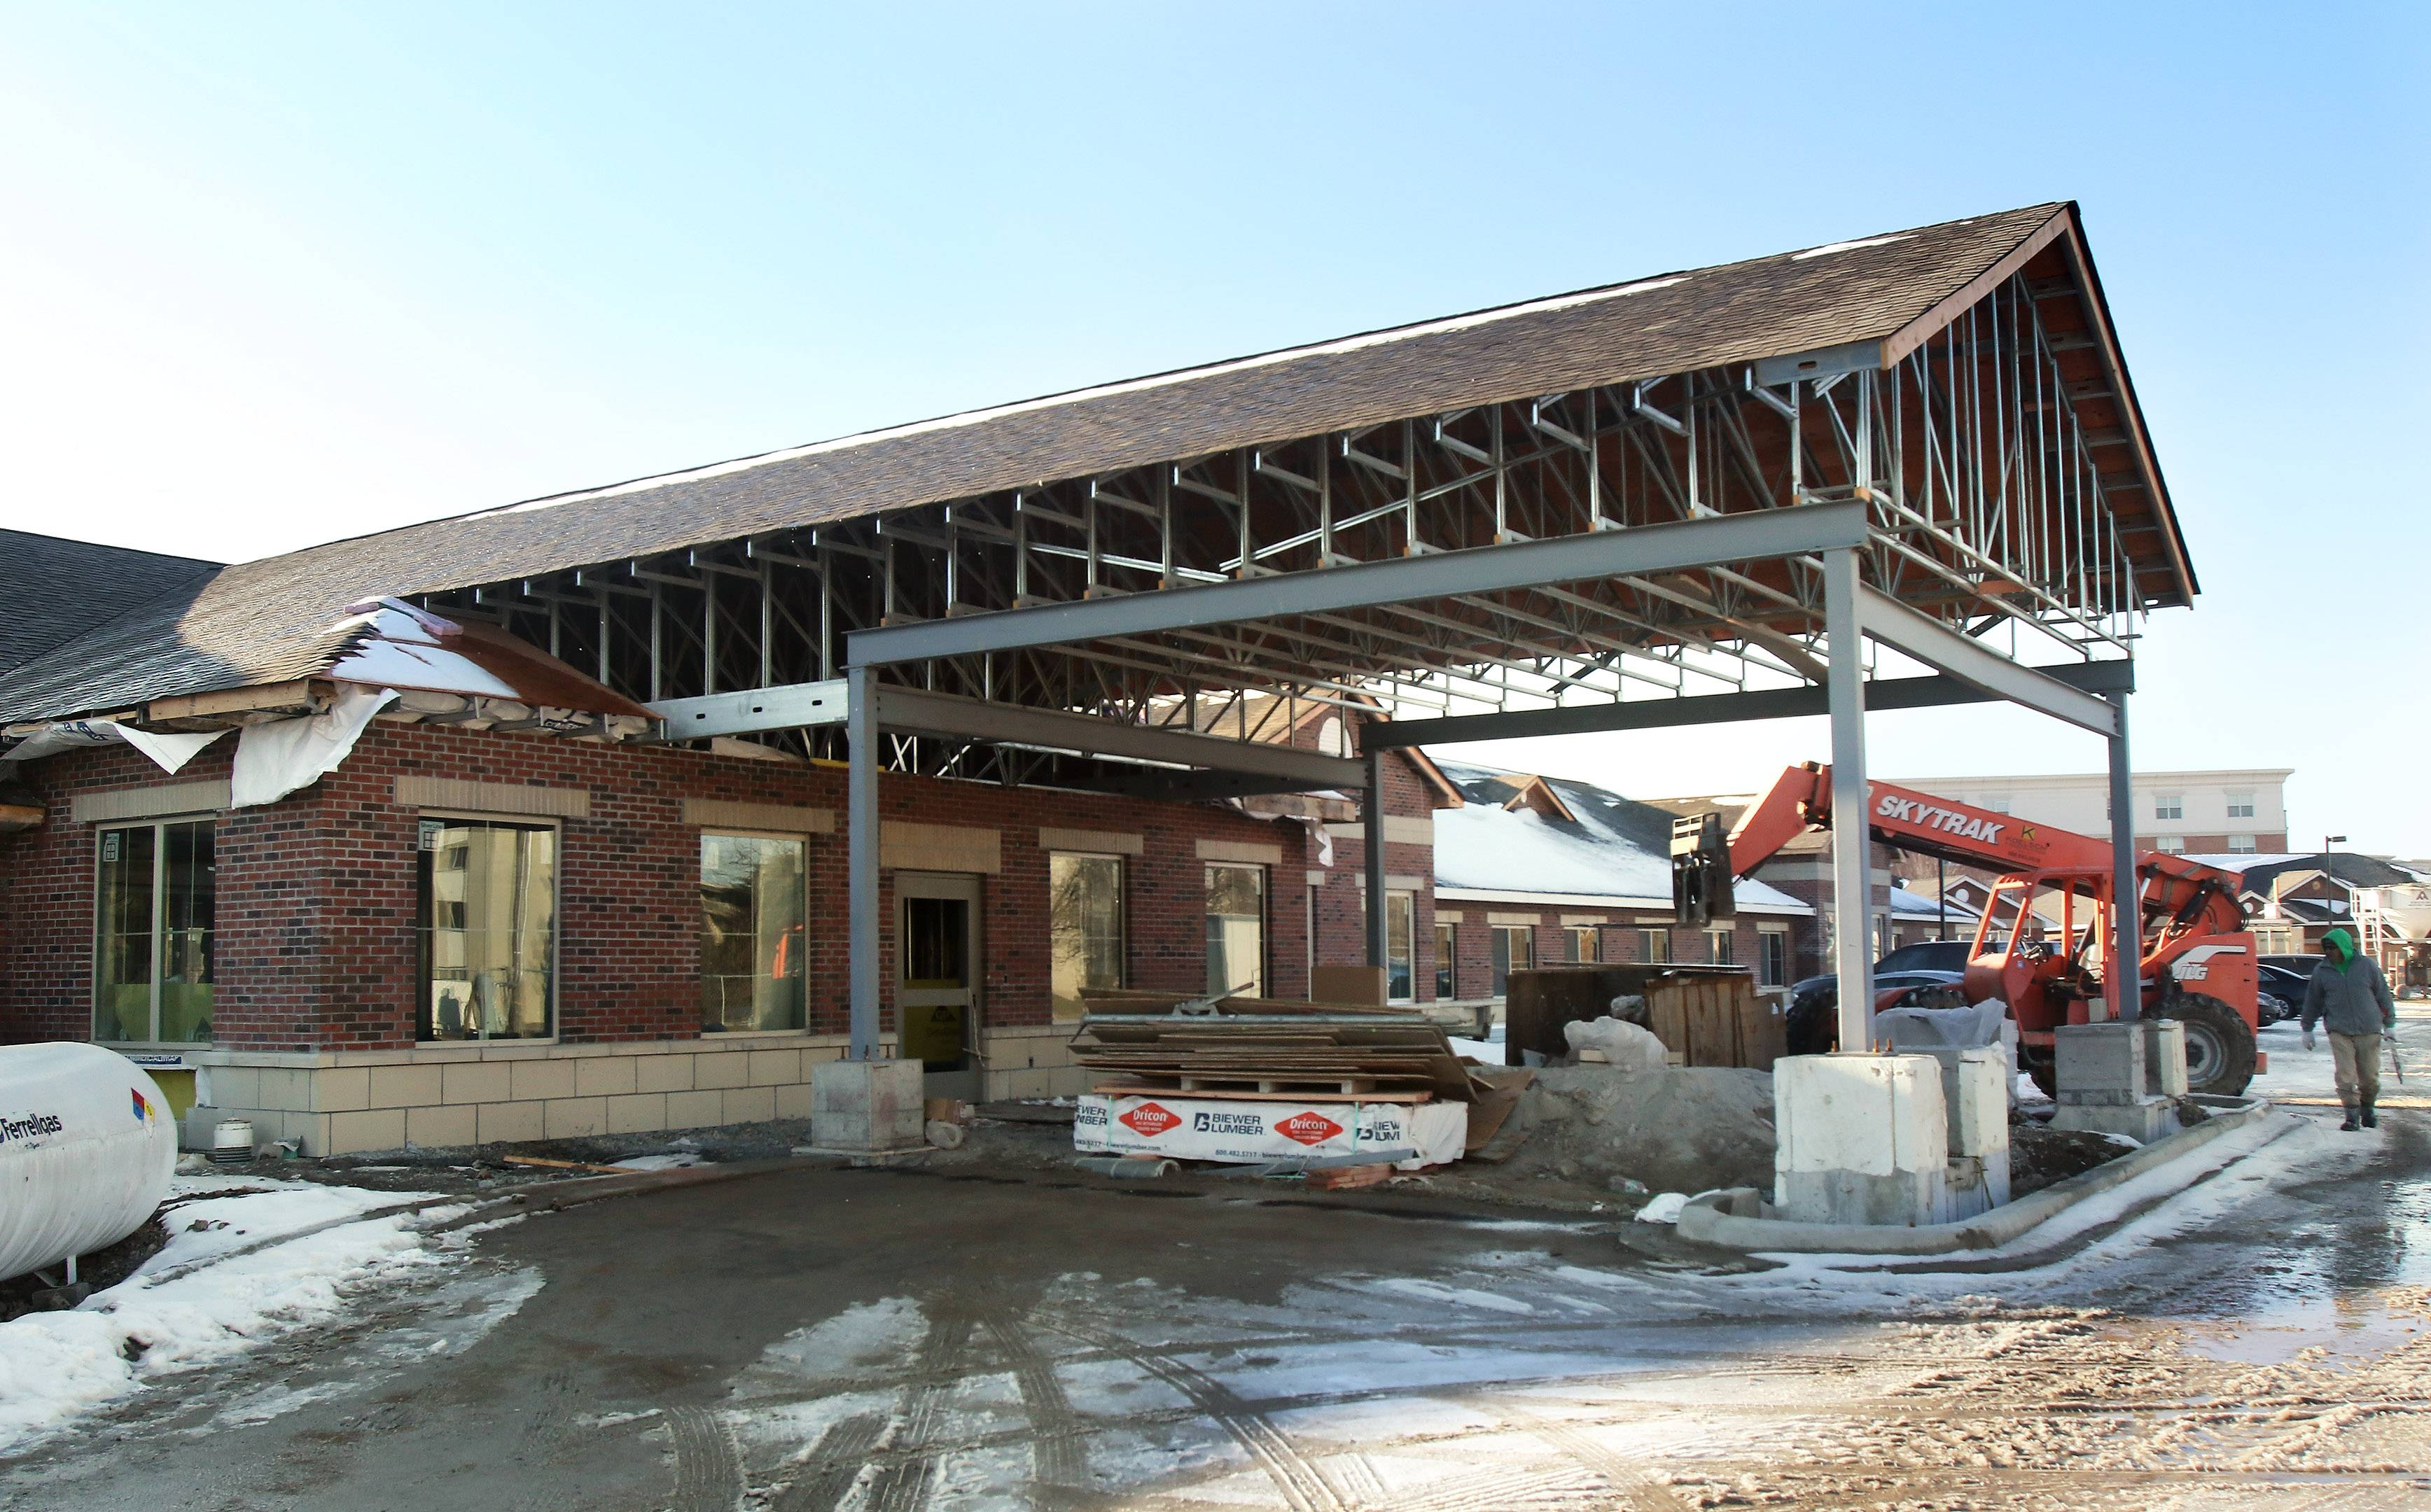 A new 72-bed memory care facility in Arlington Heights is taking shape. Waverly Inn, at 511 W. Rand Road, will be the fourth senior living community of Koelsch Senior Communities to open in the suburbs since last year.